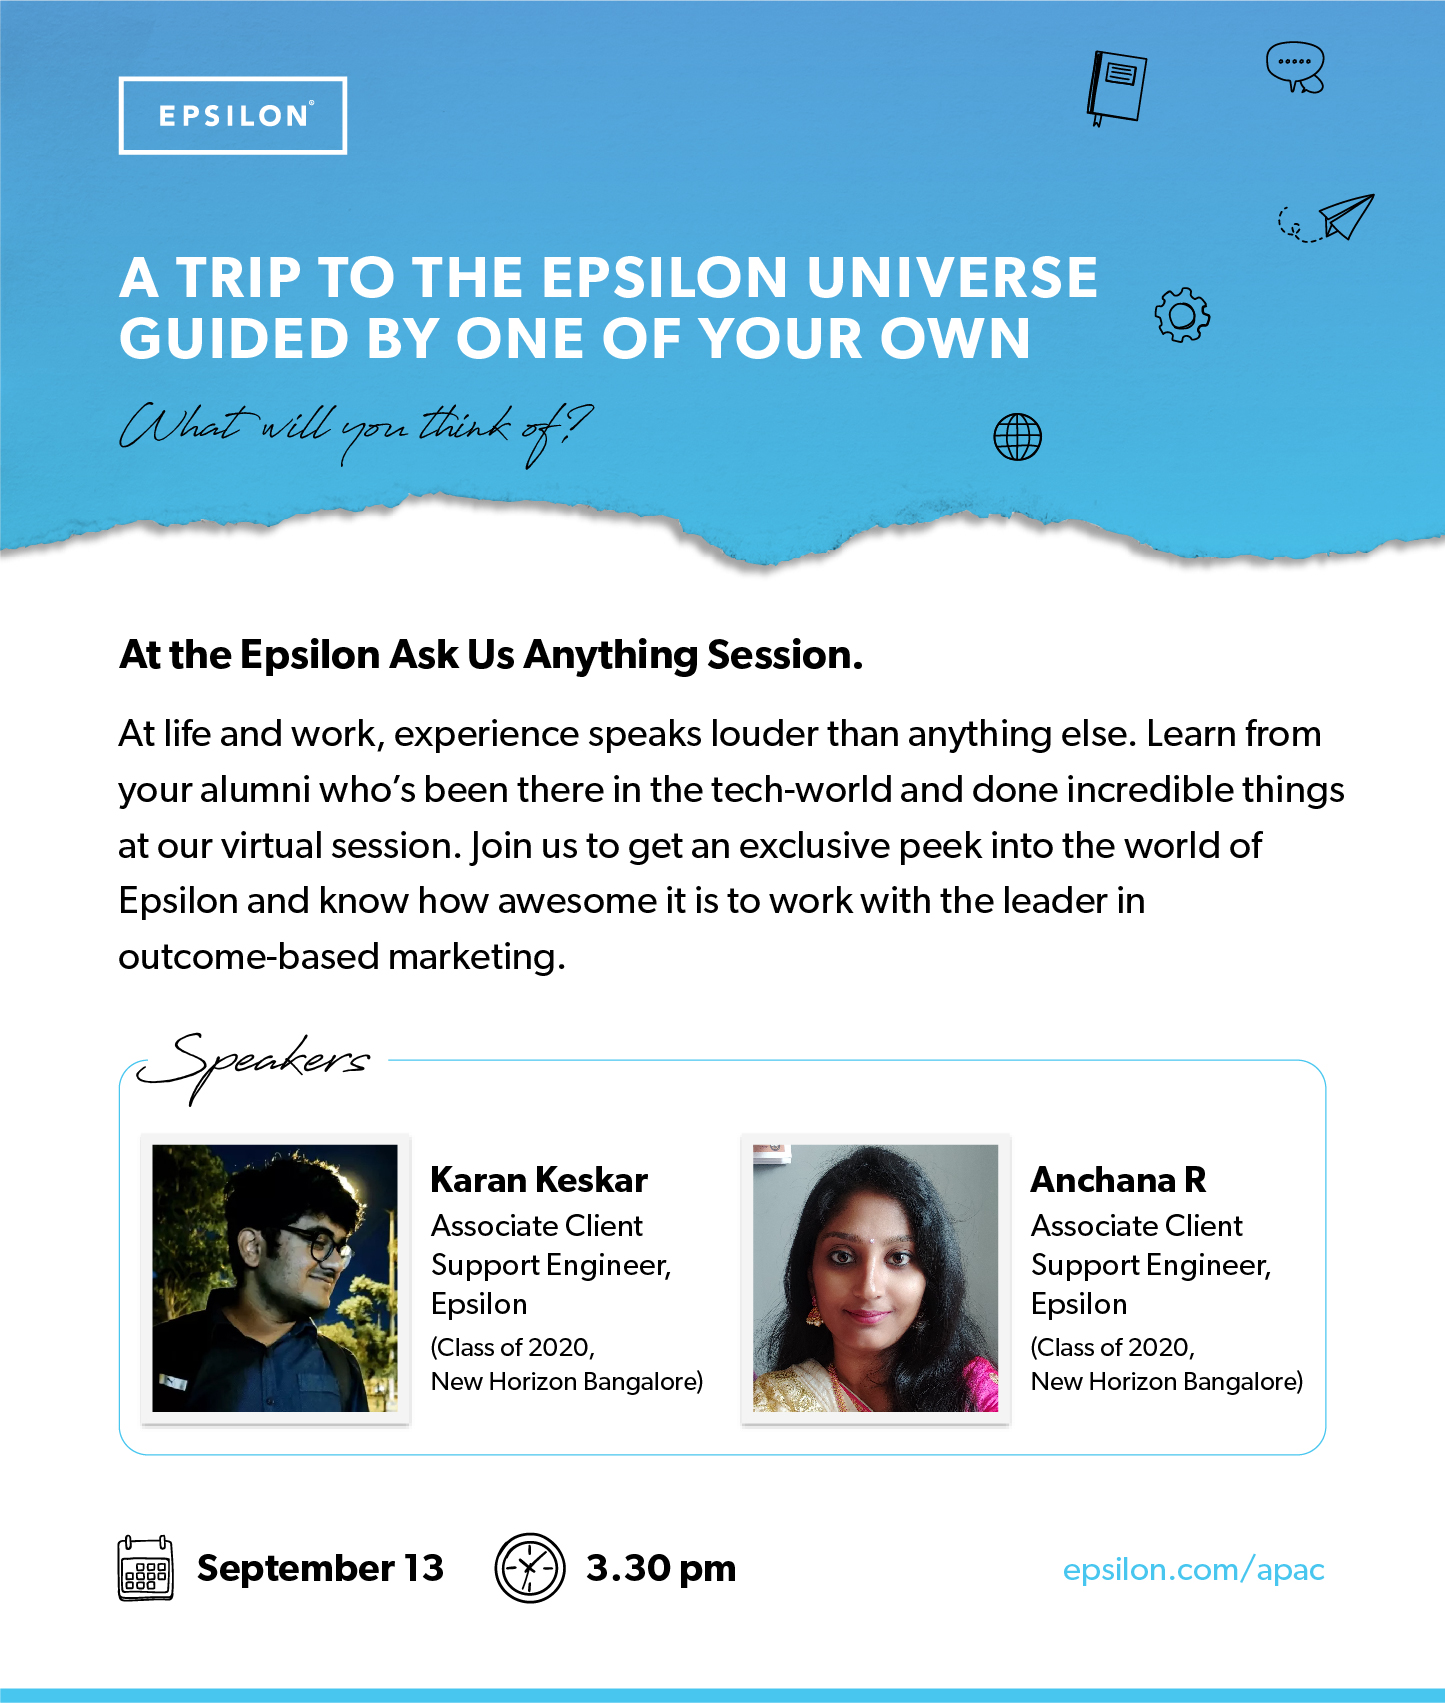 A Trip to the EPSILON Universe Guided by one of your own